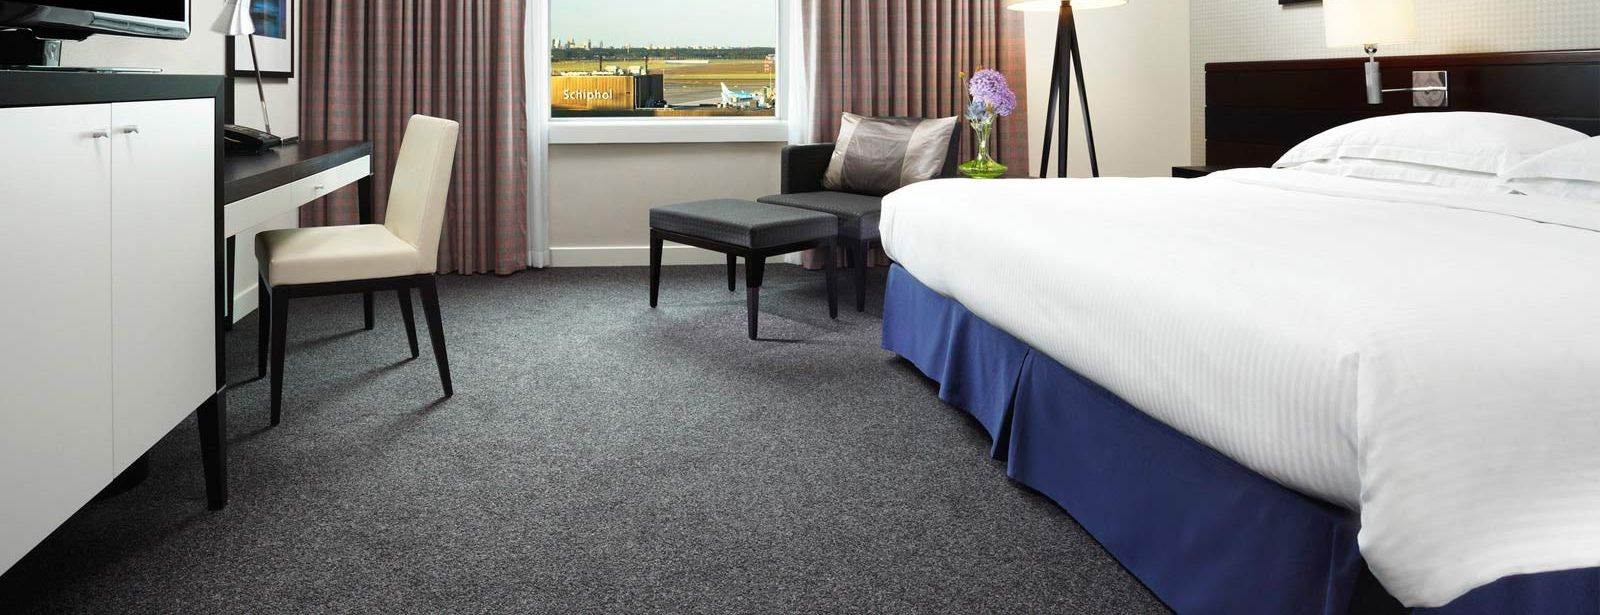 Executive Club kamer inclusief ontbijt - Sheraton Amsterdam Airport